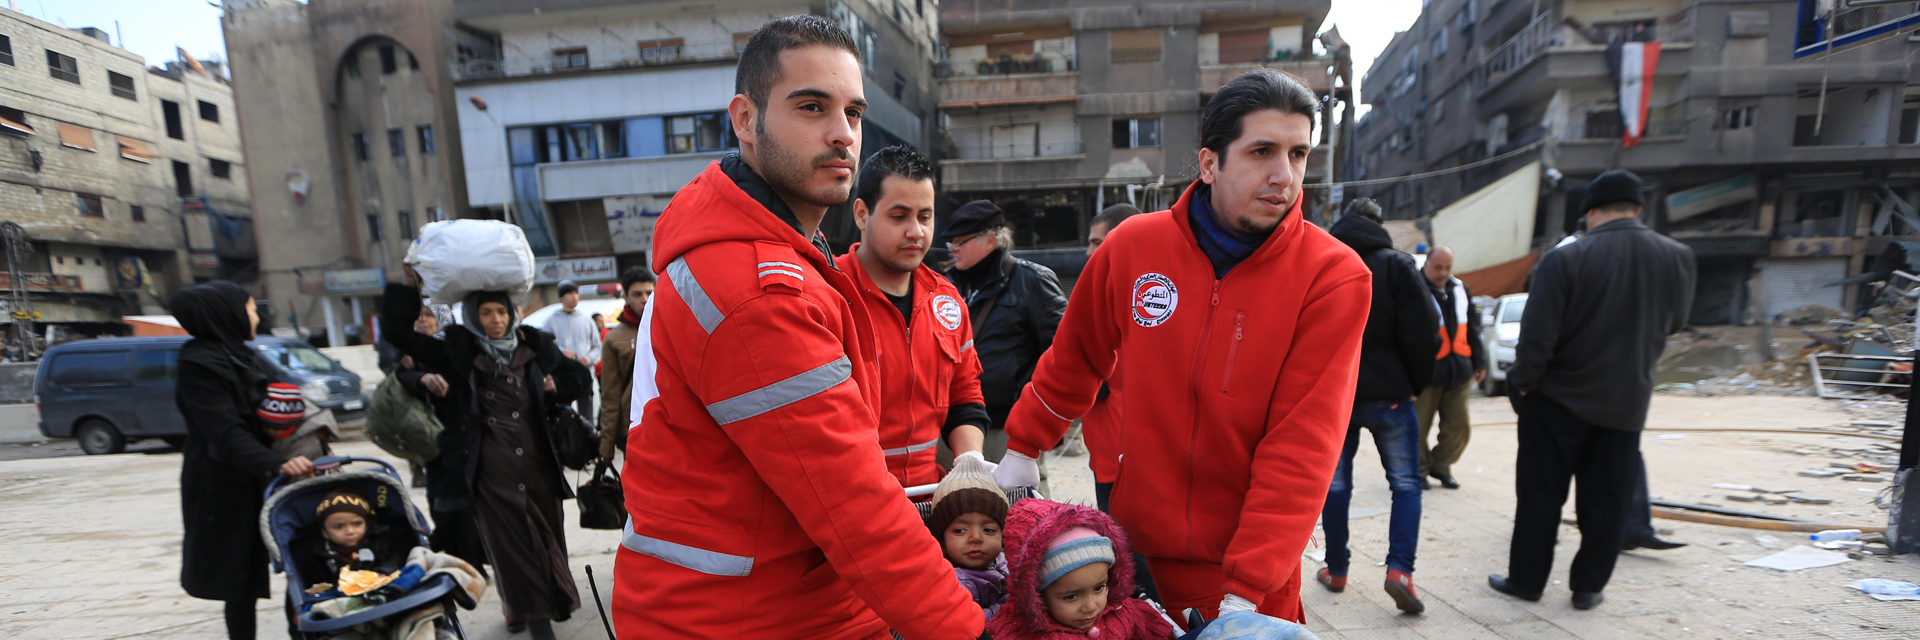 Children, Damascus, Evacuation, SARC Volunteers, Syria, Yarmouk Camp